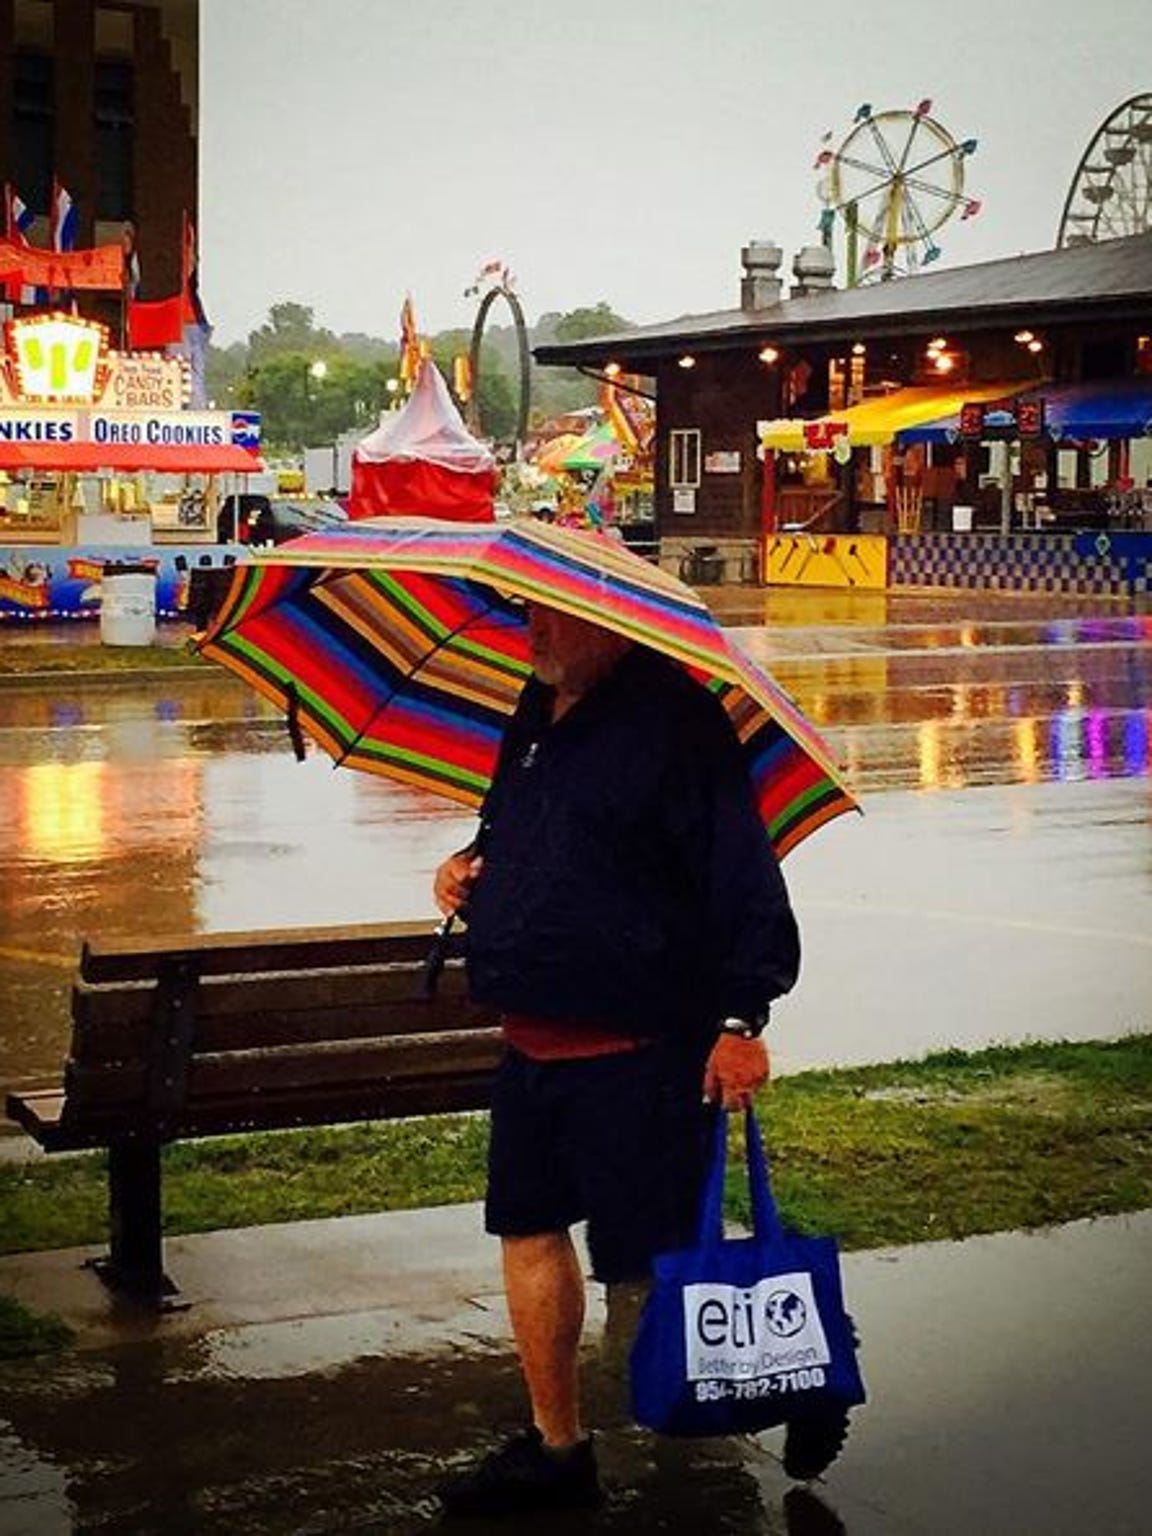 You might get a little wet today at the Iowa State Fair.